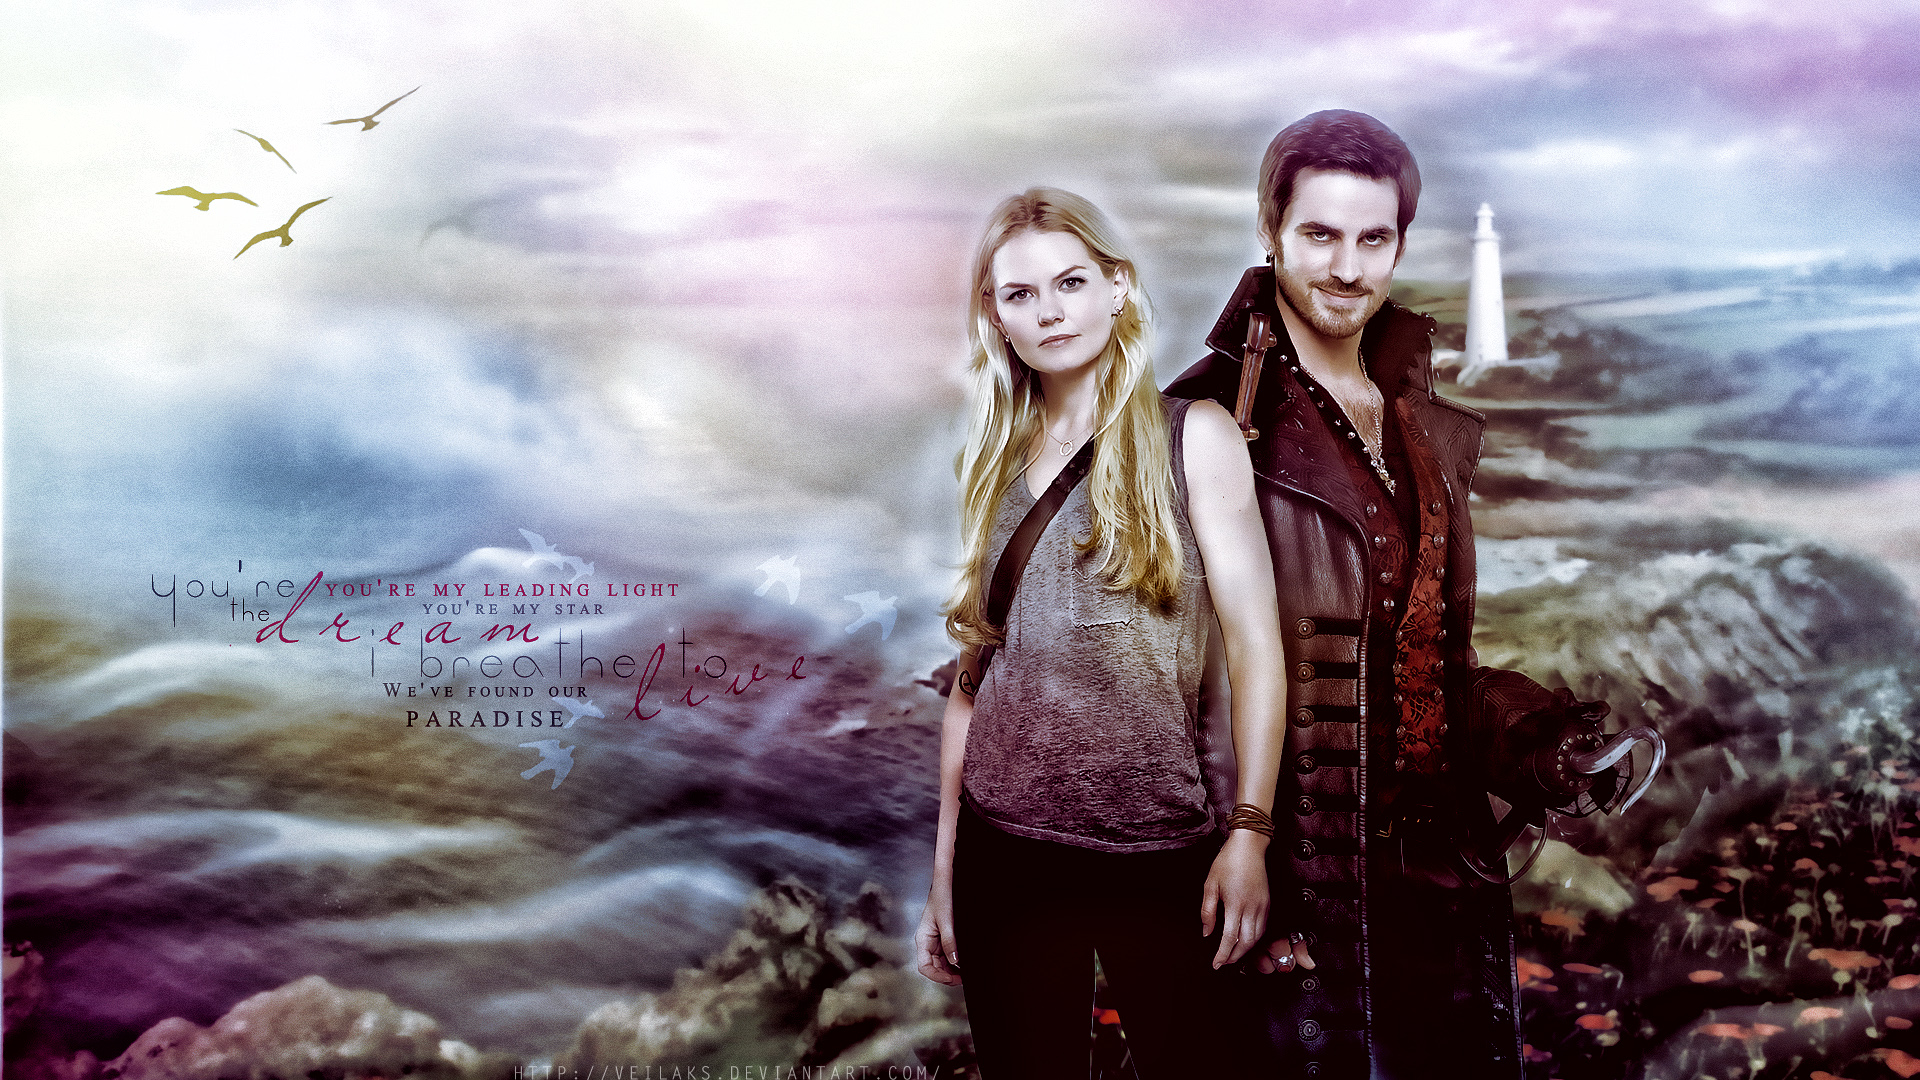 Captain Hook and Emma سوان, ہنس